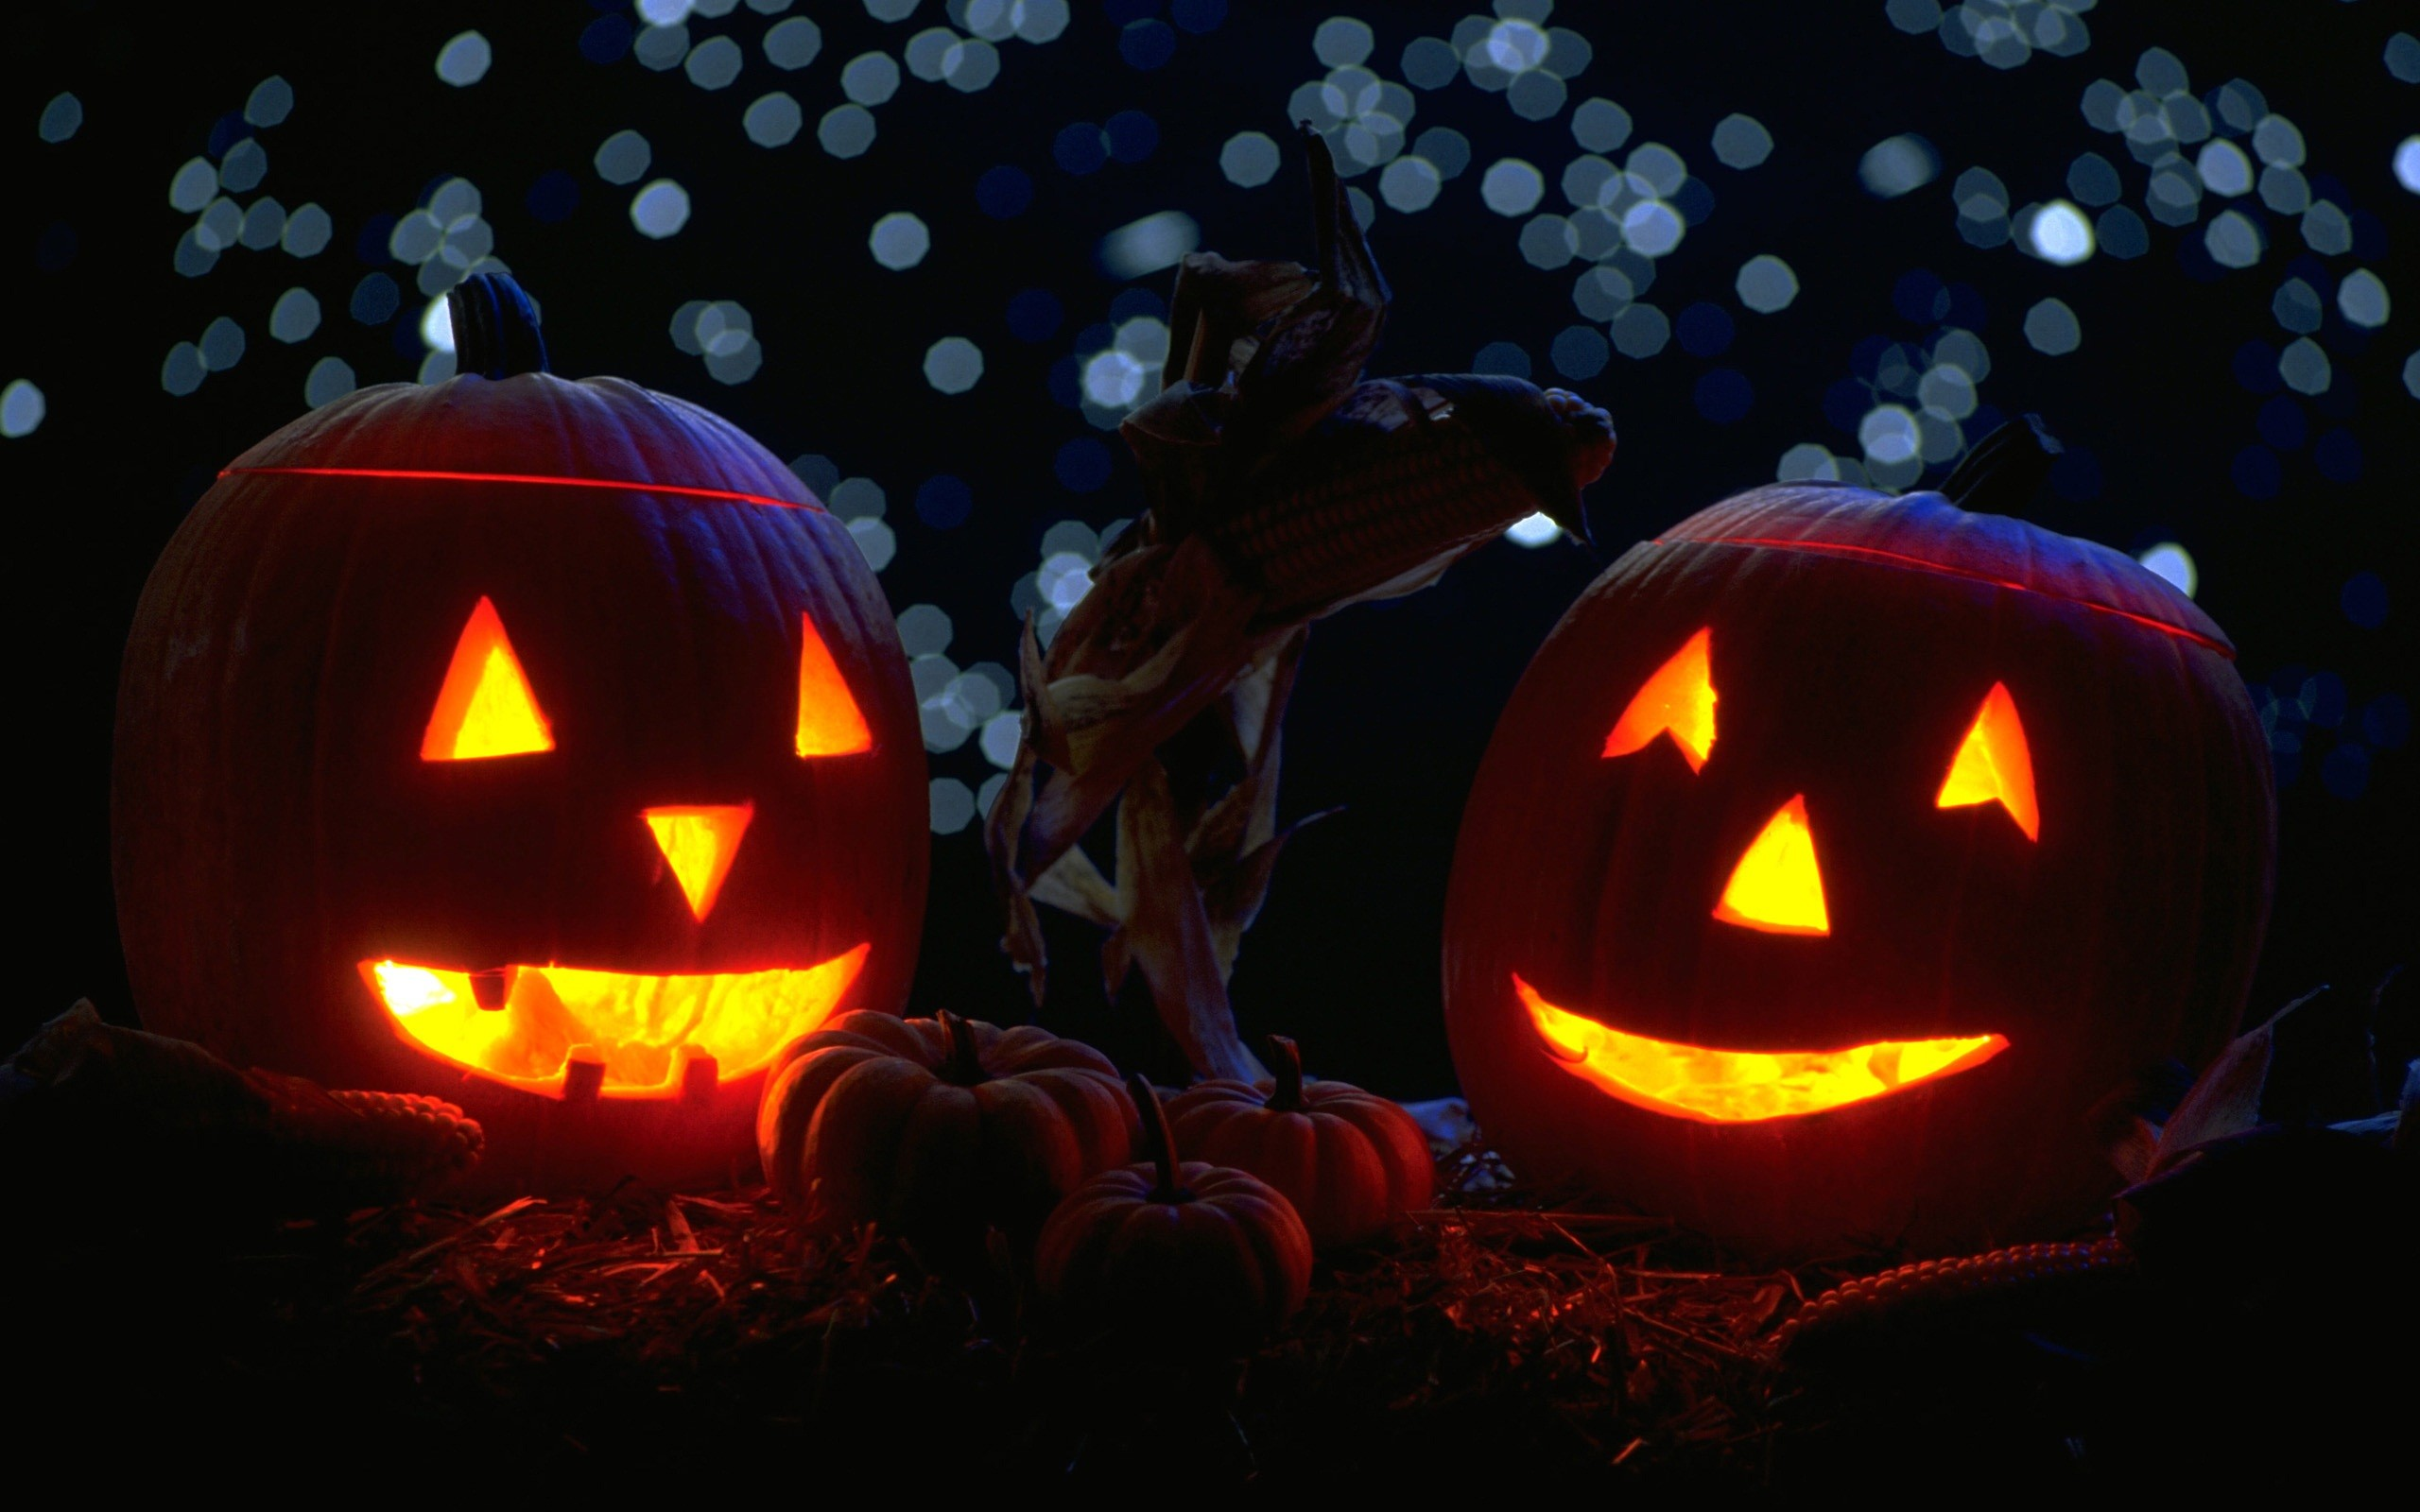 60 Amazing Halloween HD Wallpapers 1920×1080 – Px [Set 4] | Free  HD Wallpapers for Widescreen, High Definition, Mobile, PC, Destop, …